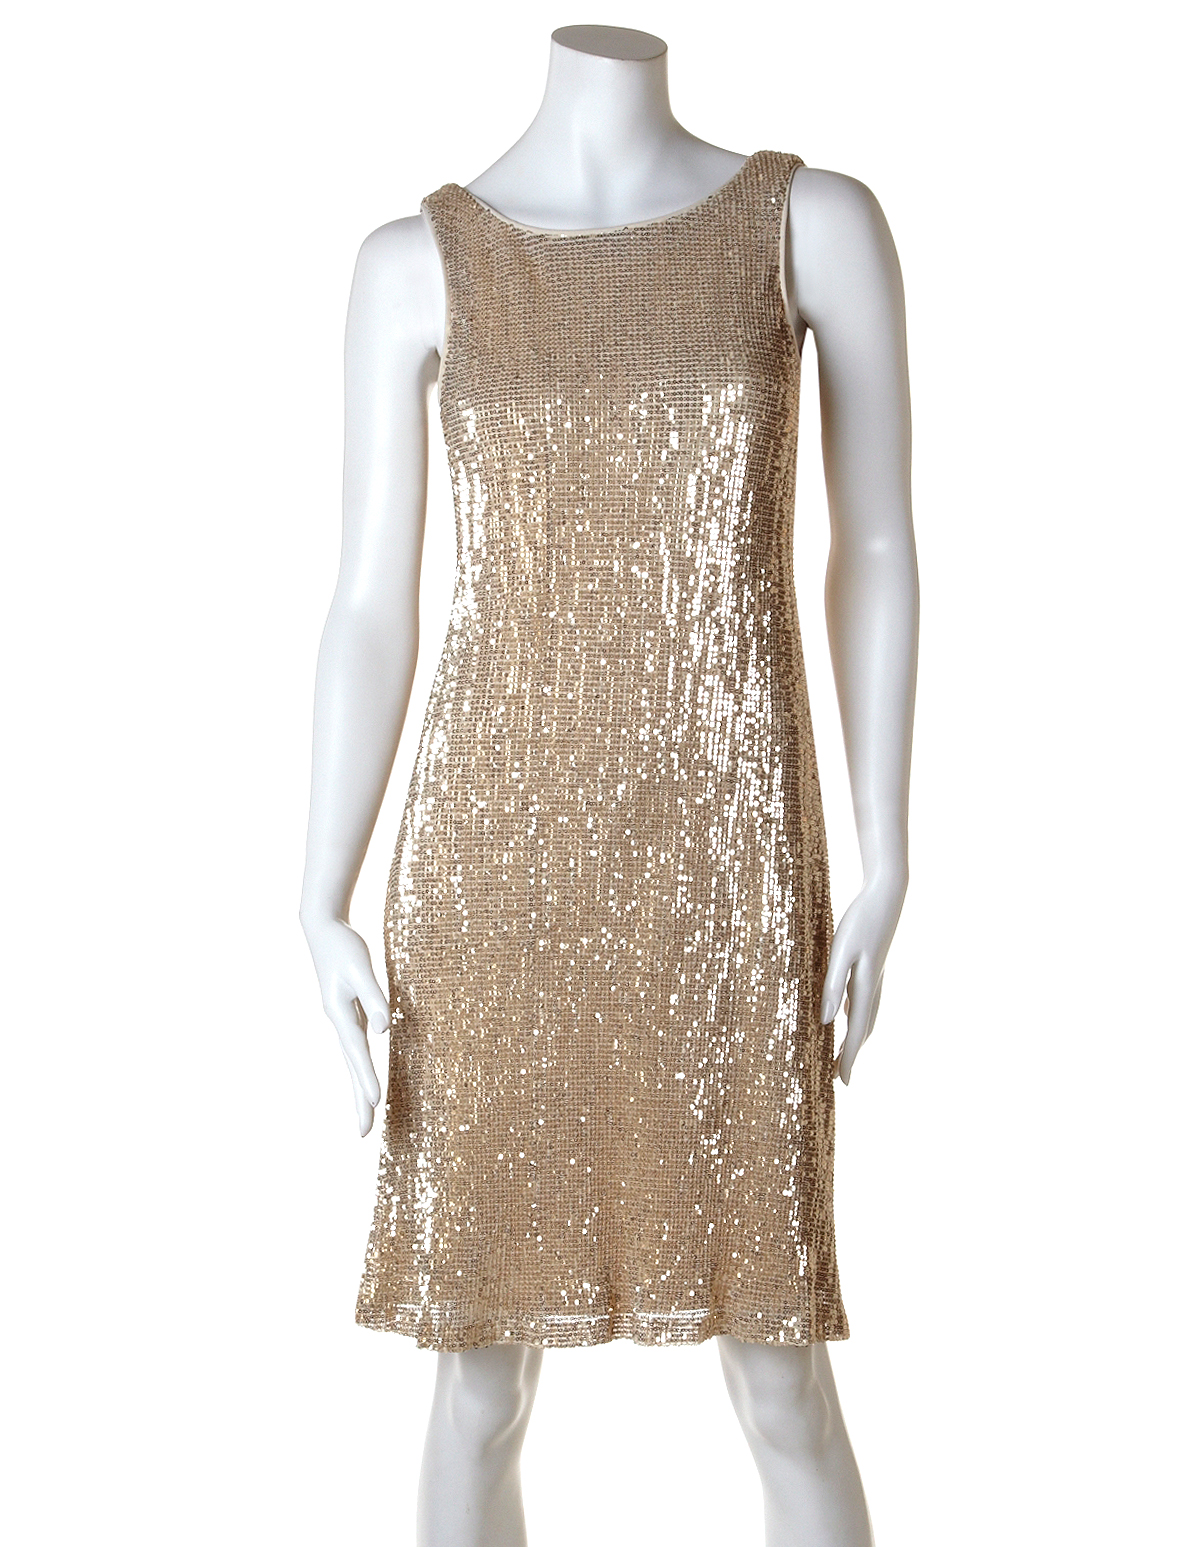 Fashion week Shift Gold dress pictures for lady